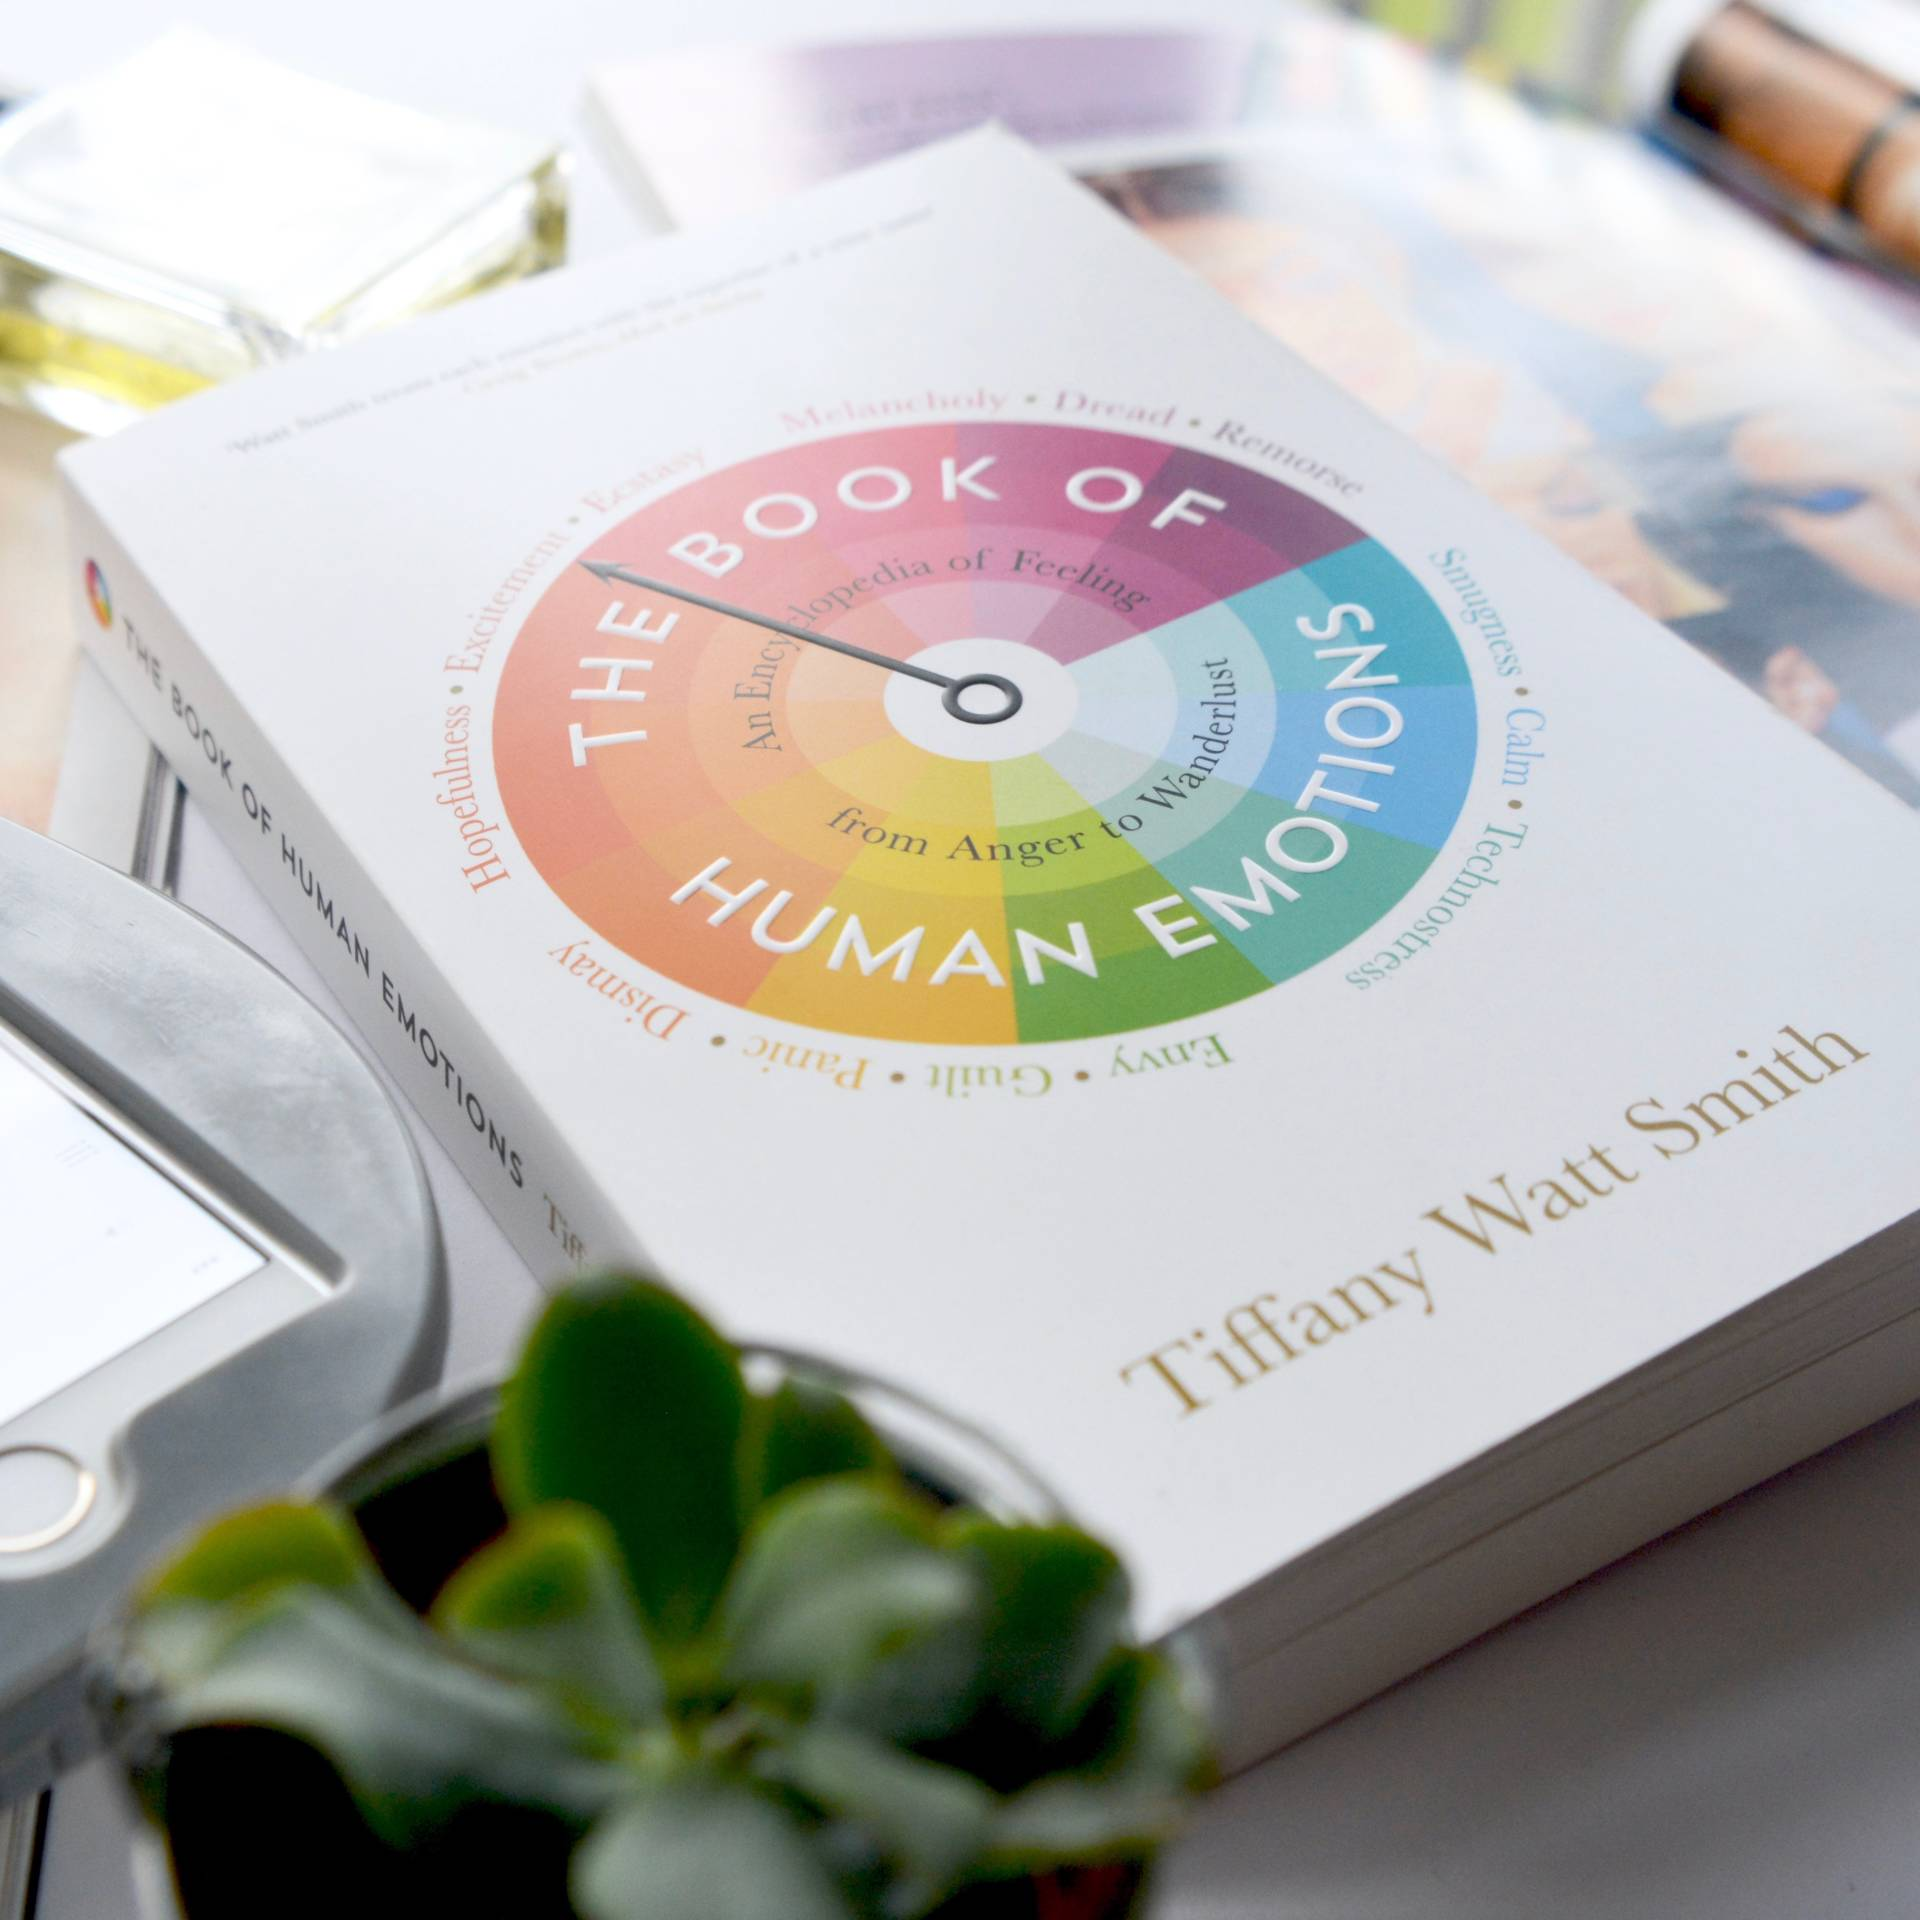 Friday Faves: A really interesting book if you're interested in human behaviour and emotions...